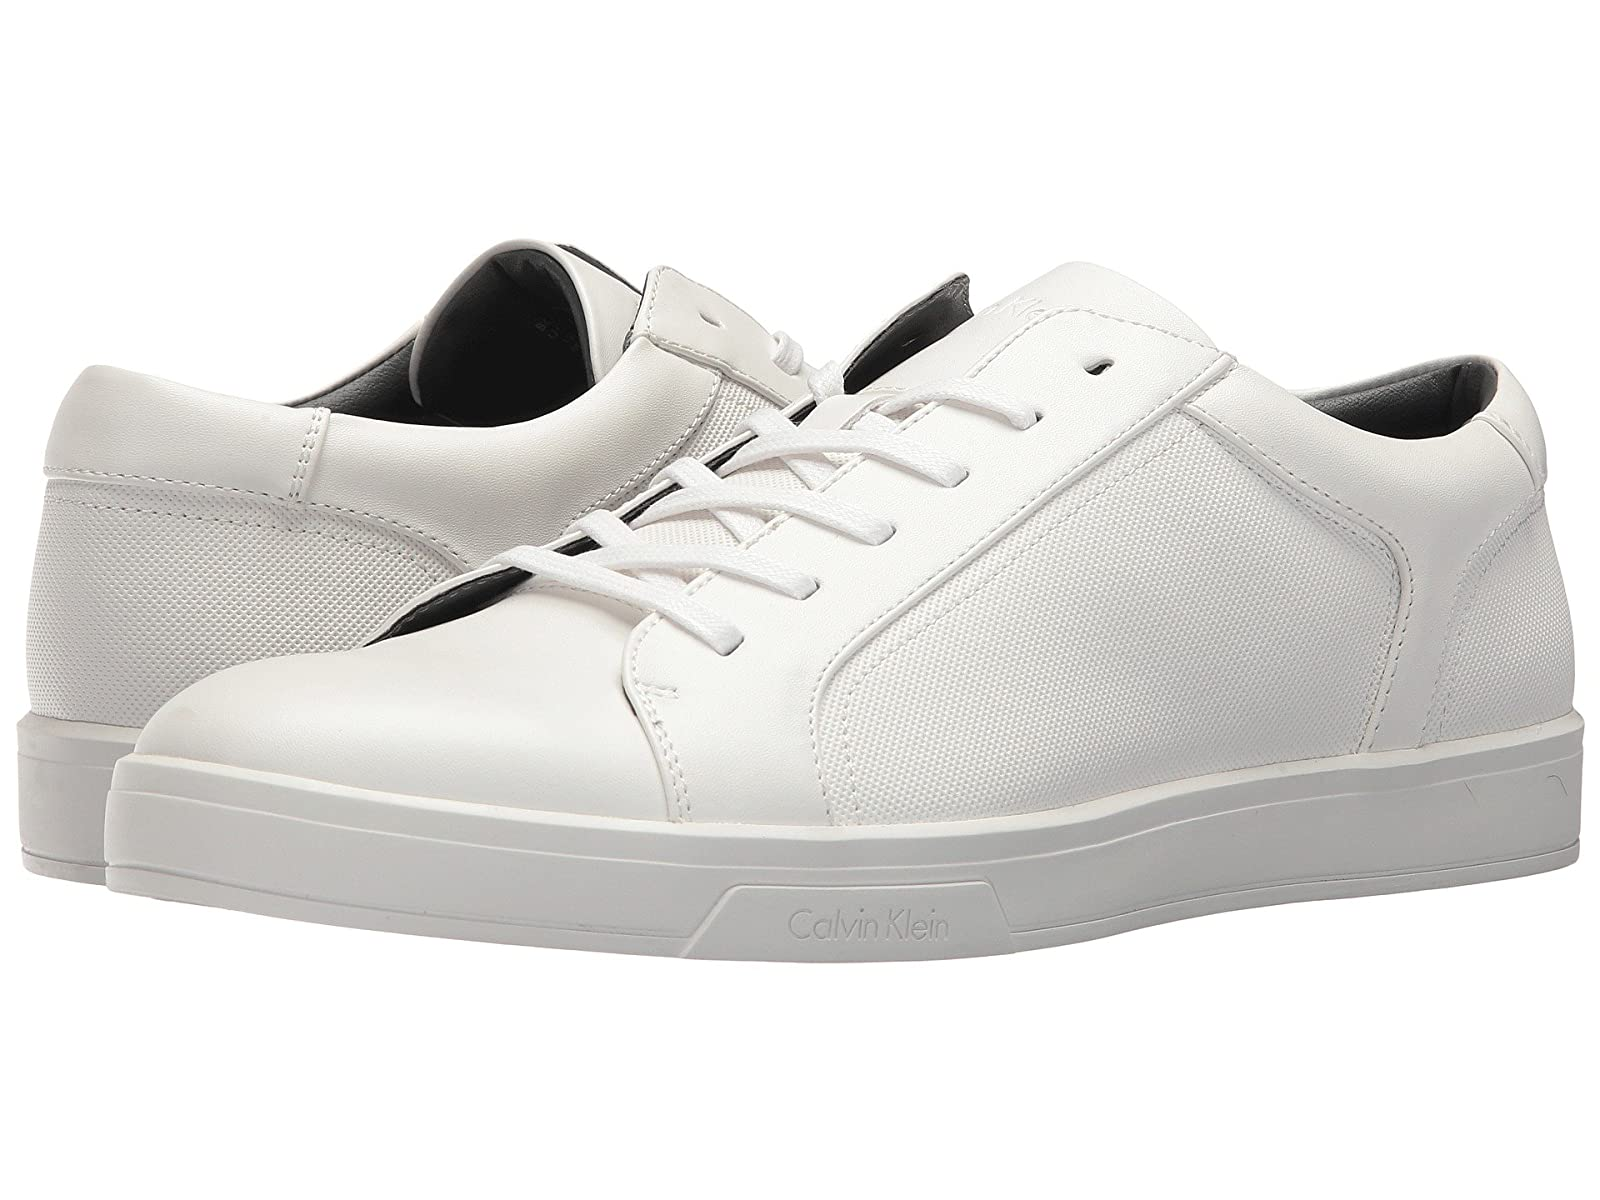 Calvin Klein BowyerAtmospheric grades have affordable shoes